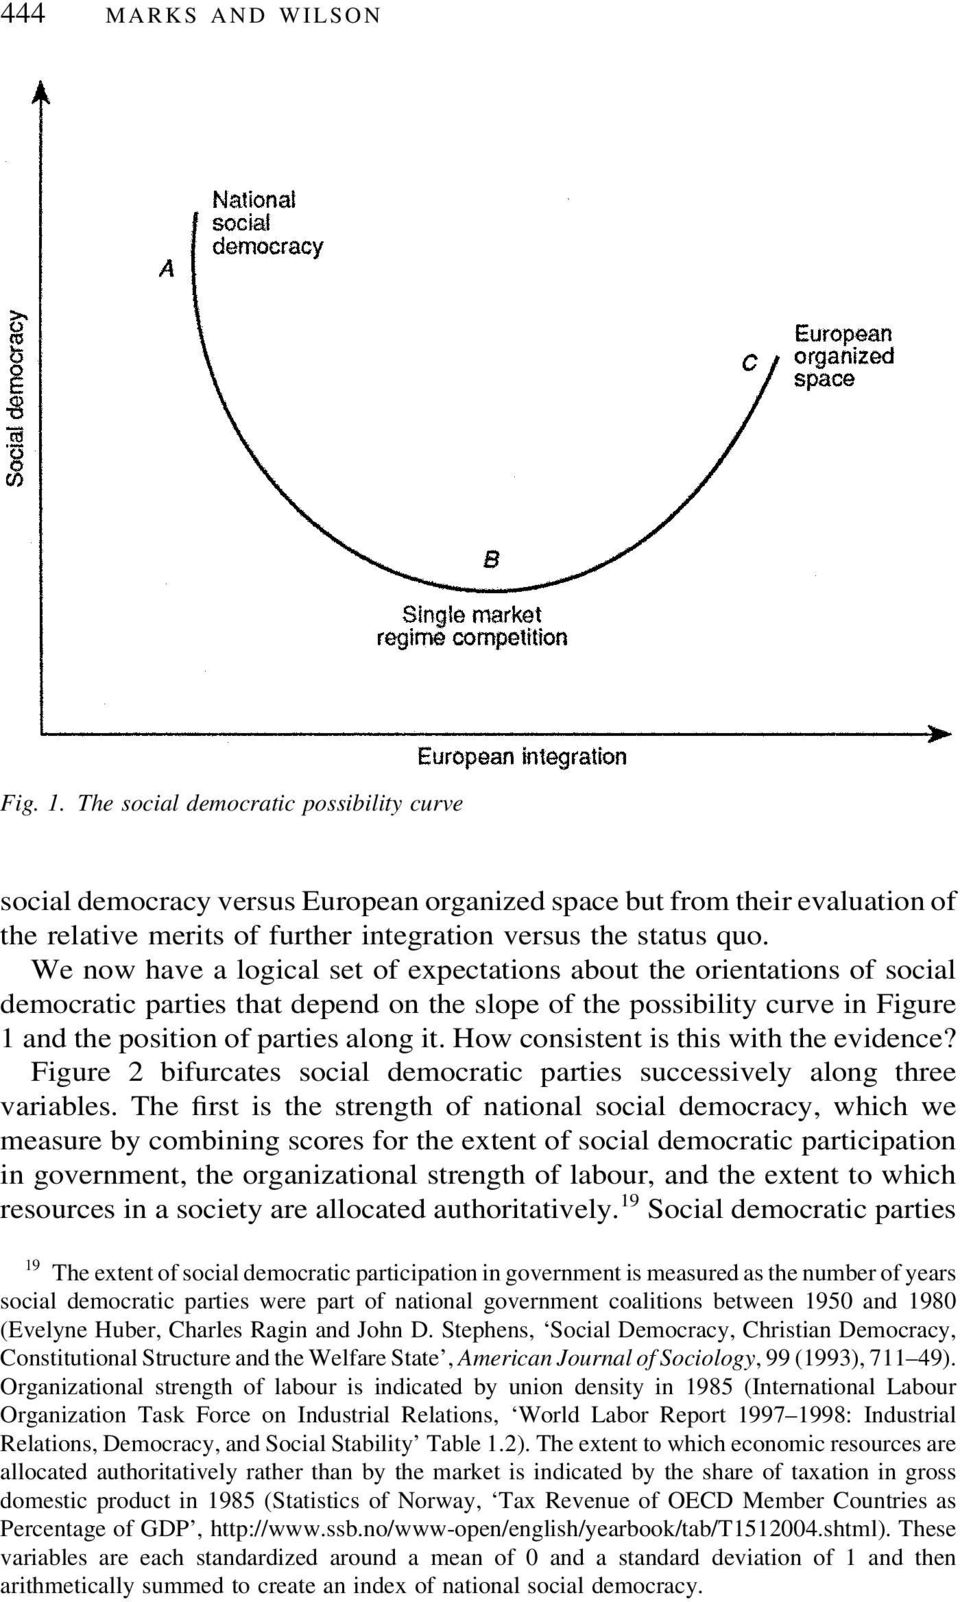 We now have a logical set of expectations about the orientations of social democratic parties that depend on the slope of the possibility curve in Figure 1 and the position of parties along it.